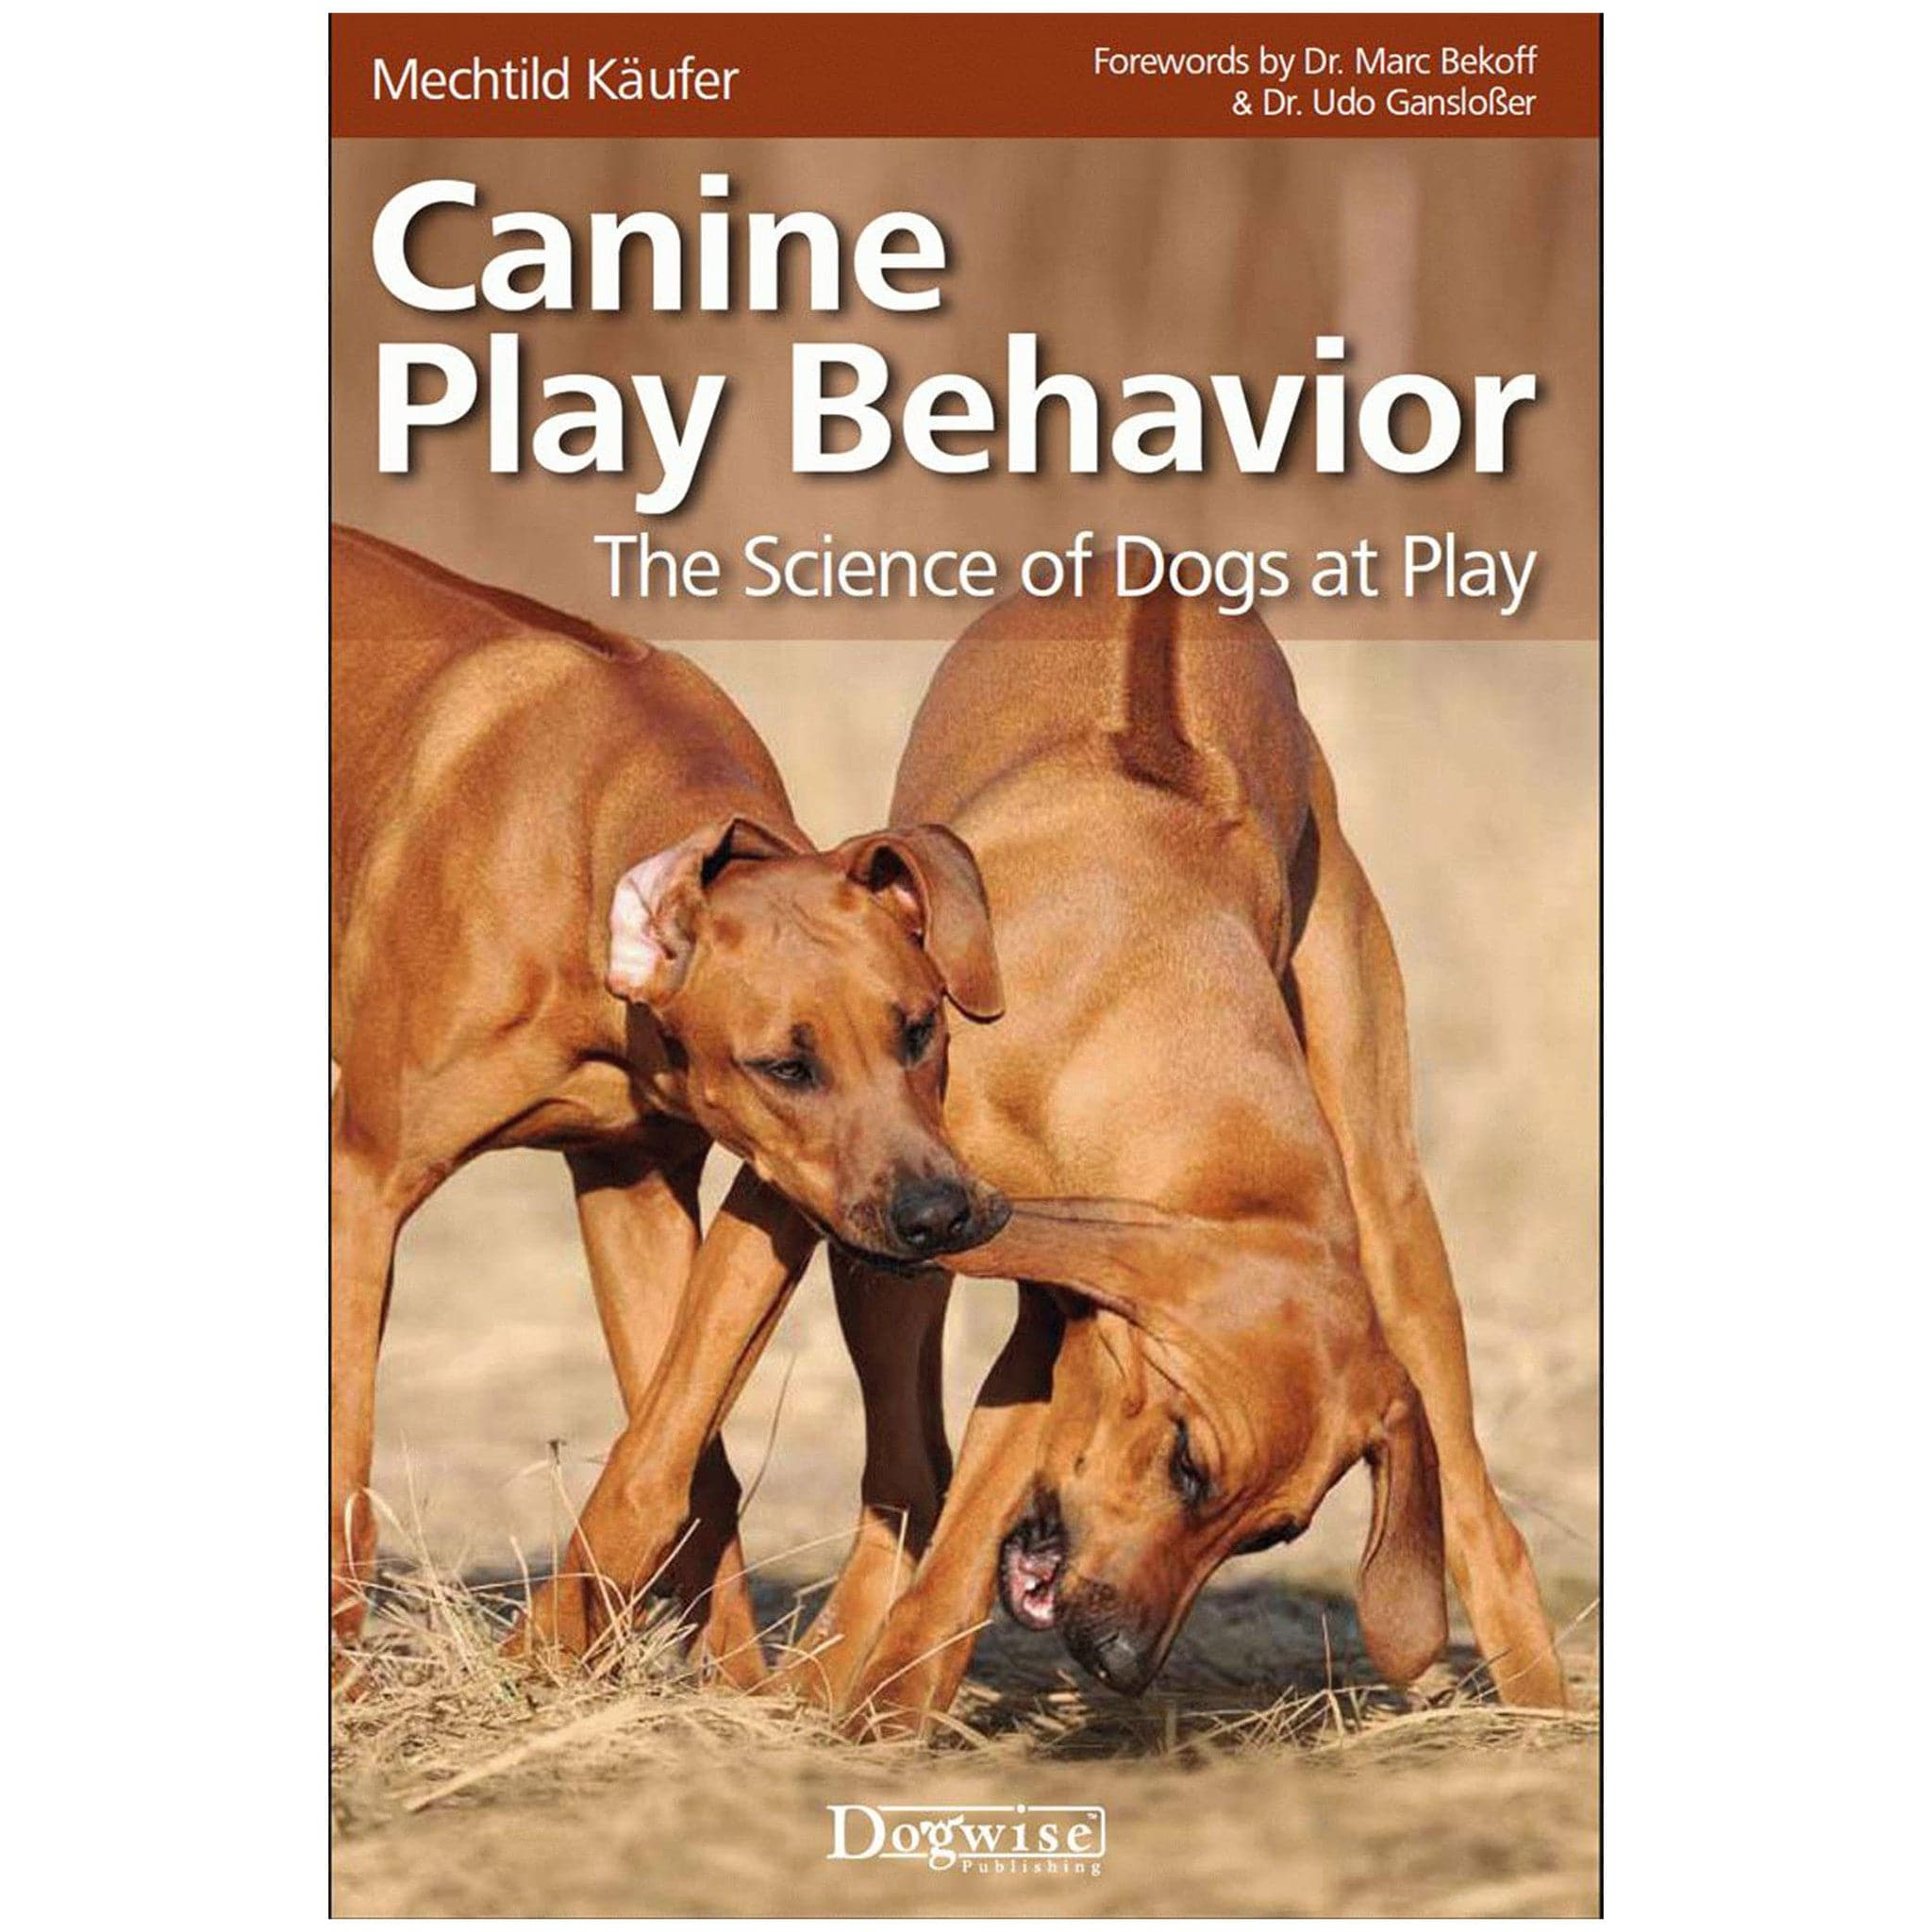 Canine Play Behavior: The Science of Dogs at Play by Mechtild Käufer